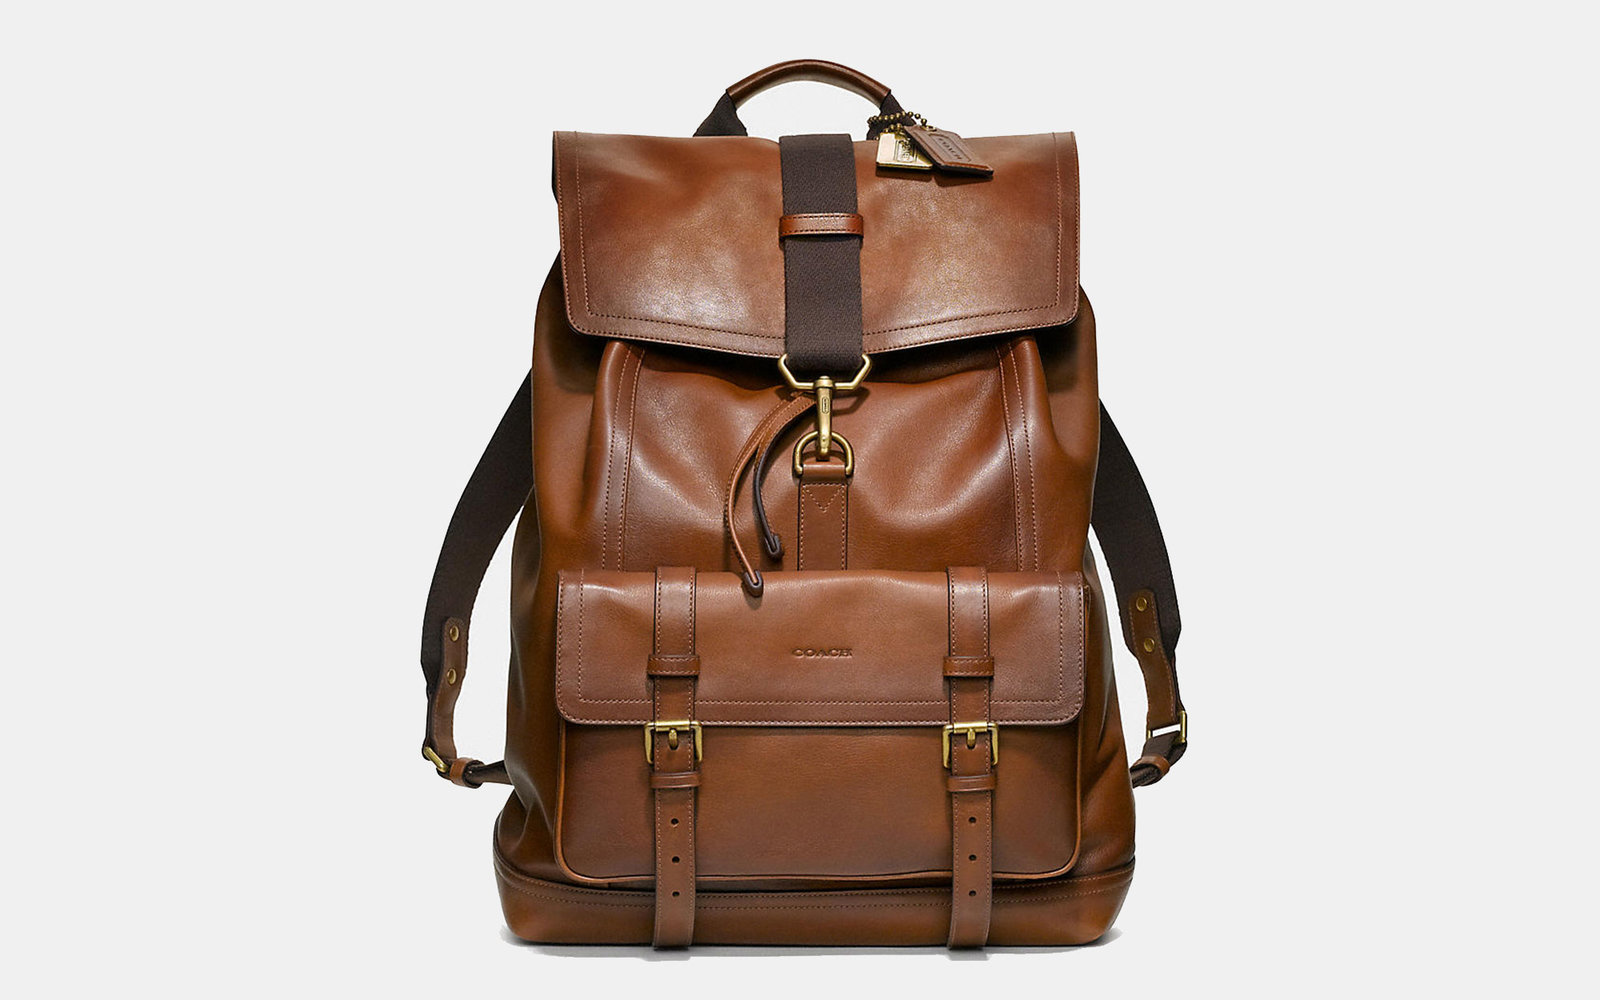 The Most Stylish Travel Backpacks For Women   Travel   Leisure travel backpacks for women